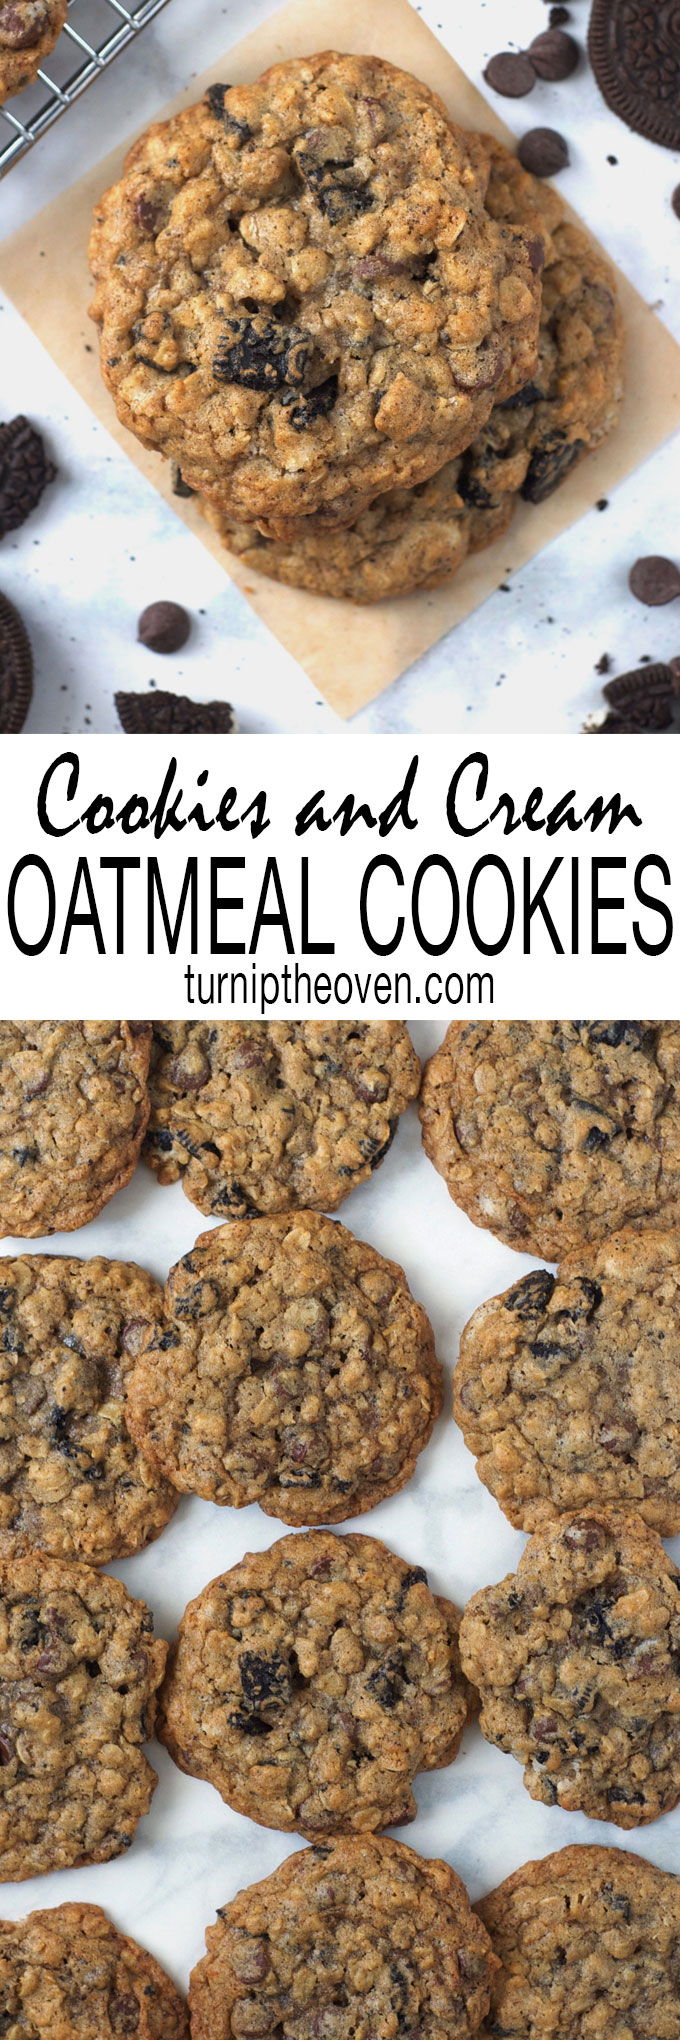 Cookies and Cream Oatmeal Cookies--these thick, chewy, bakery-size oatmeal cookies are loaded with chocolate chips and crushed chocolate sandwich cookies. A lunchbox classic, reinvented!